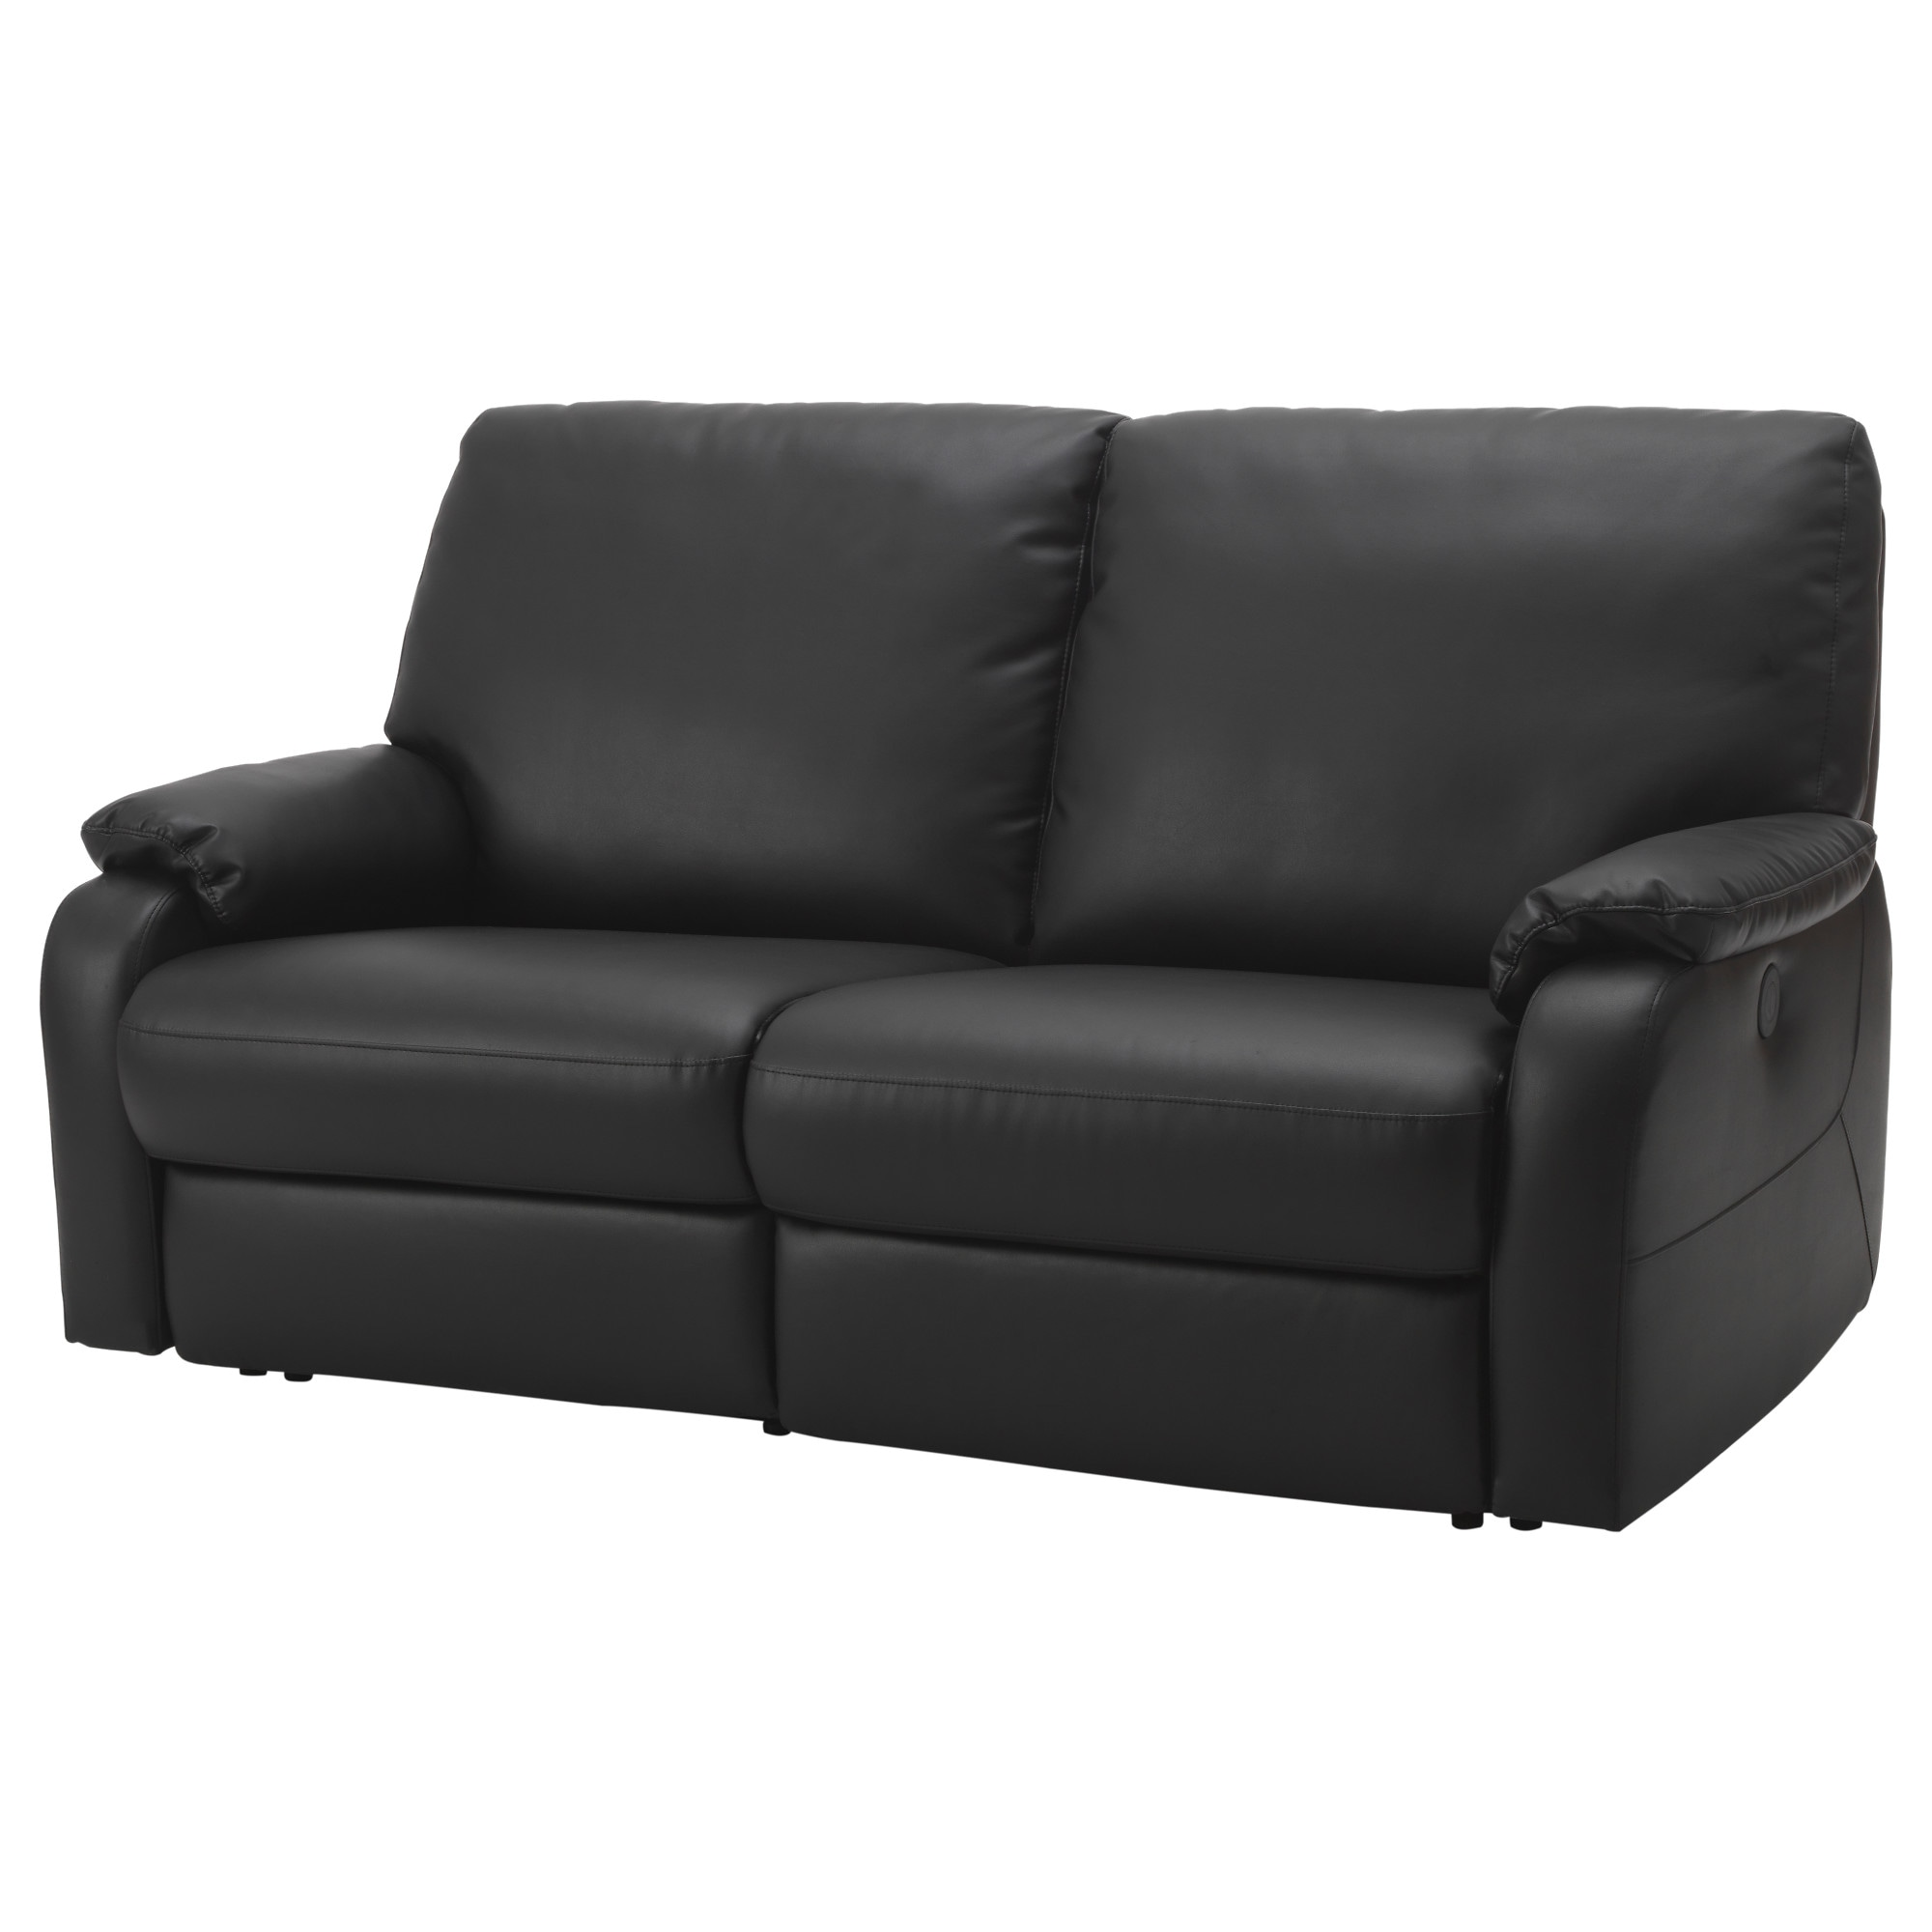 leather faux leather couches chairs ottomans ikea